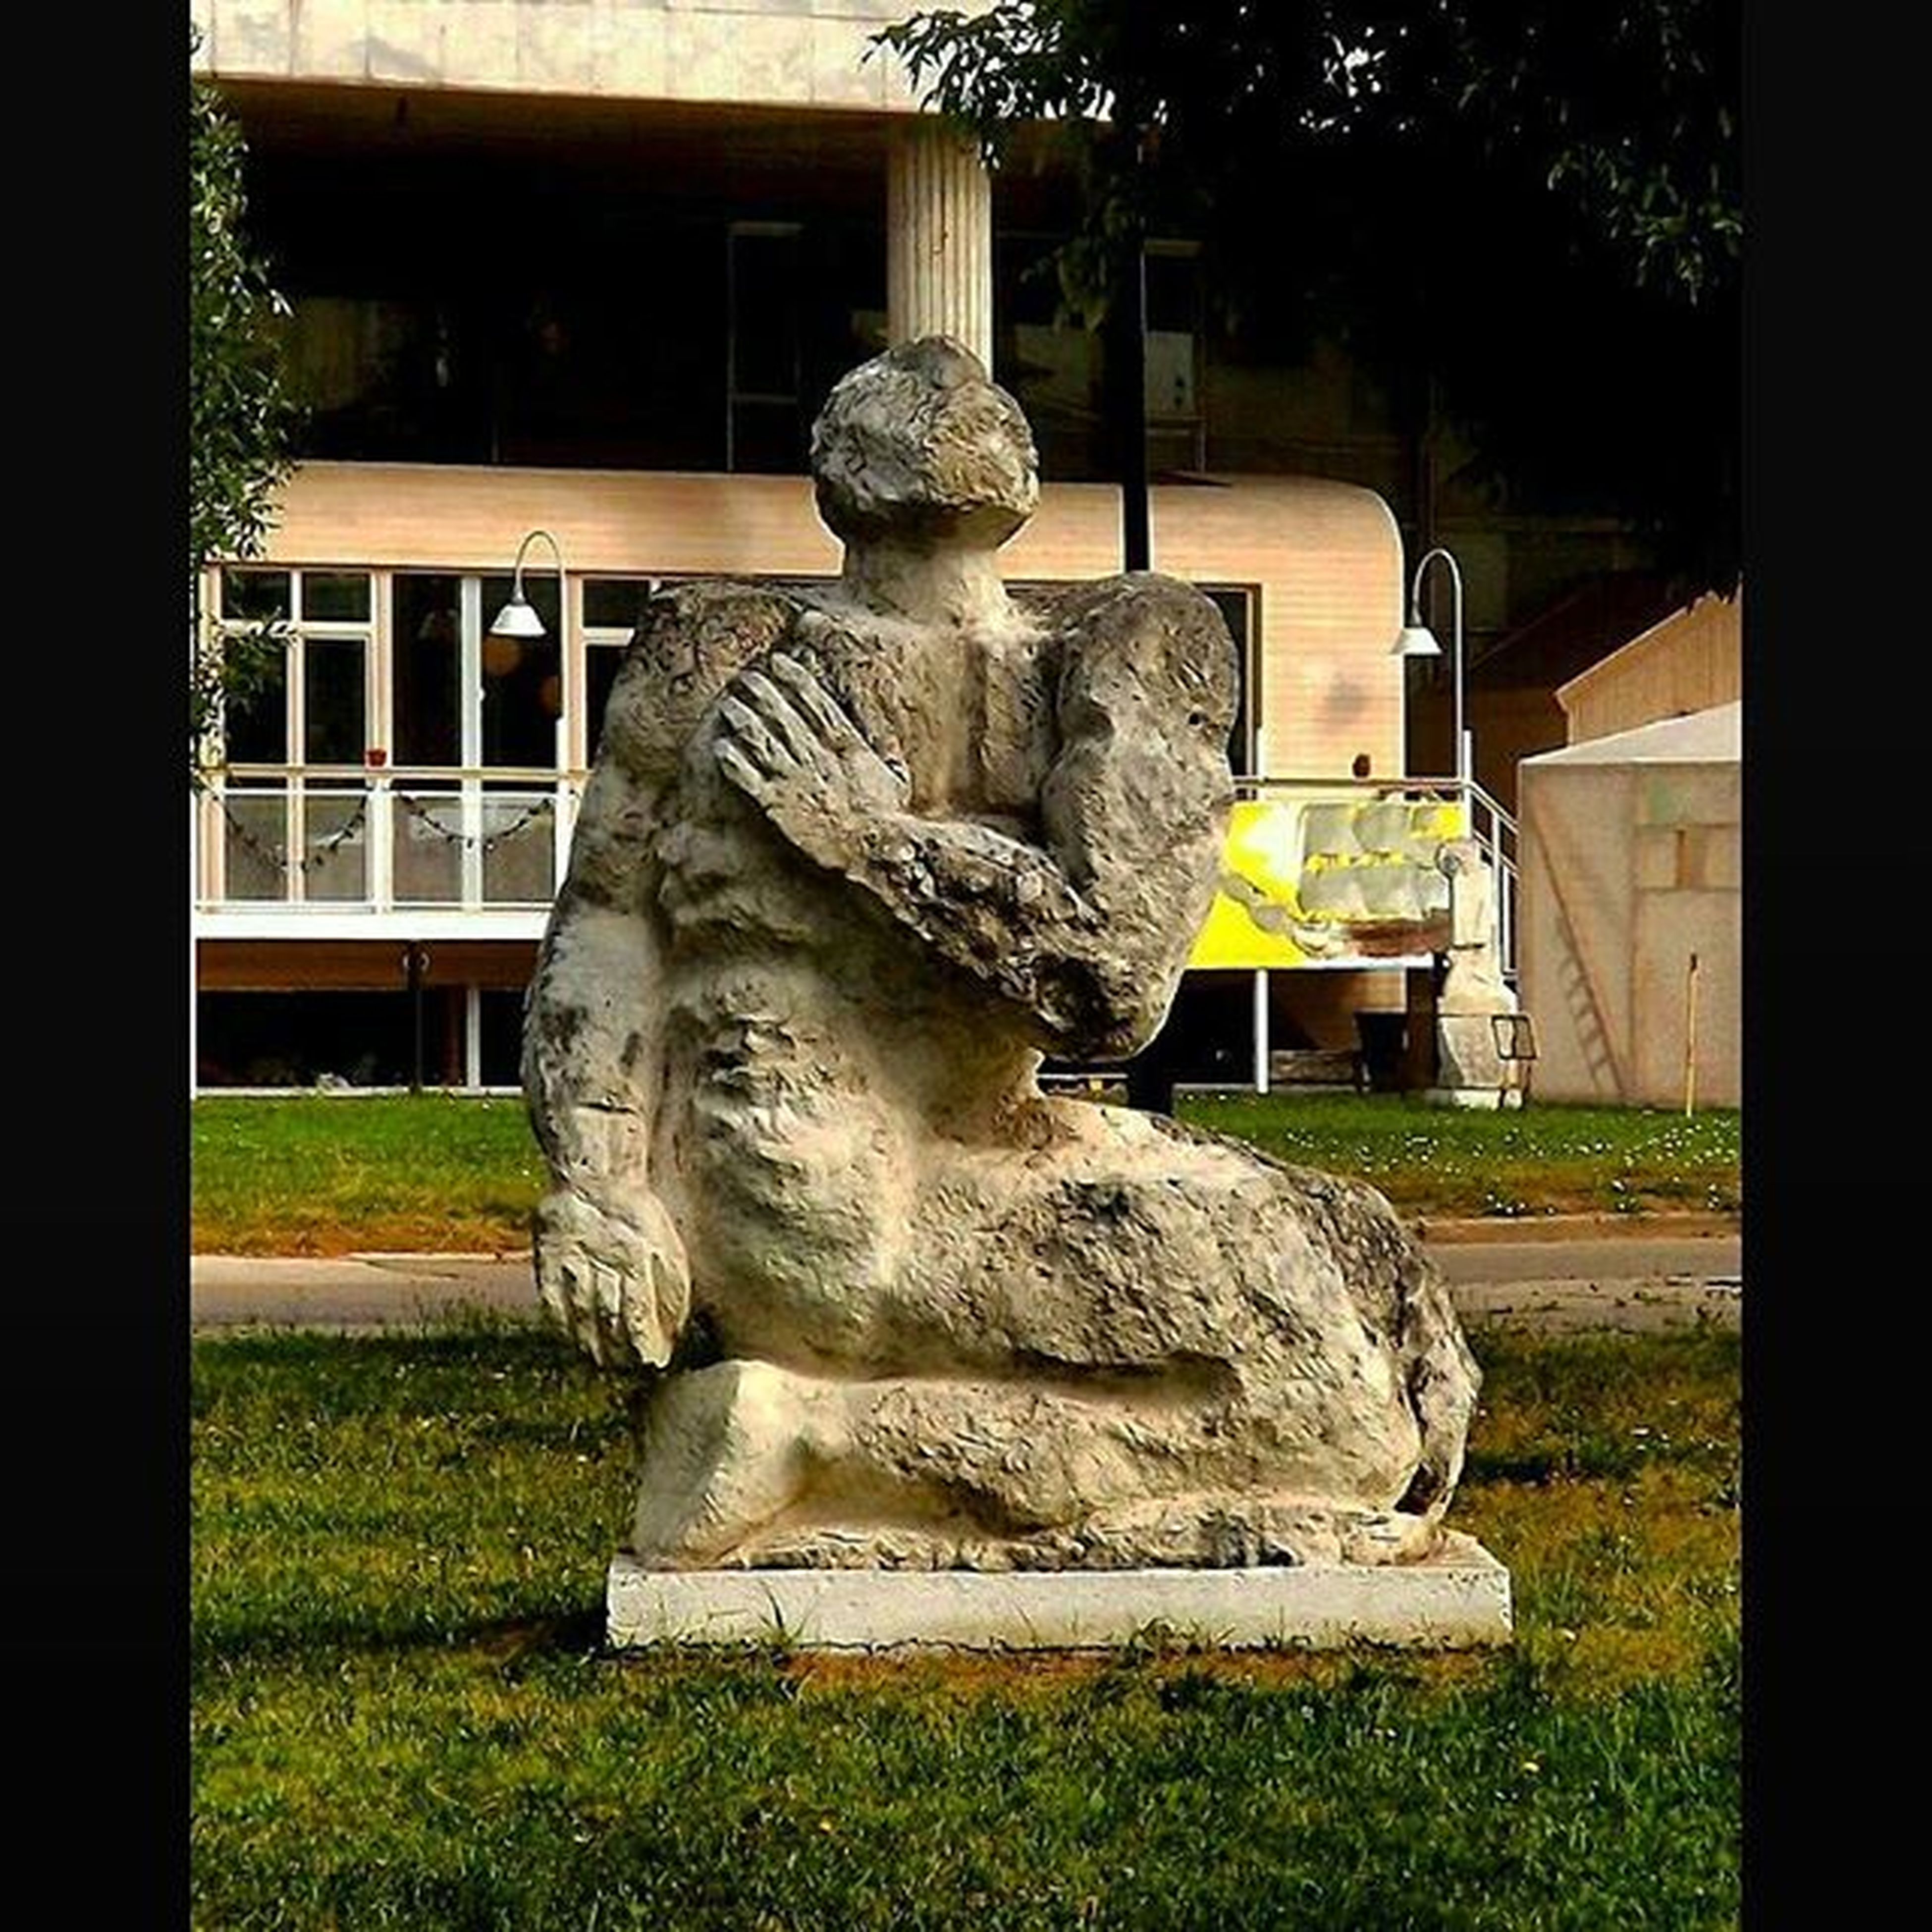 statue, sculpture, human representation, art, art and craft, creativity, built structure, carving - craft product, stone material, architecture, animal representation, grass, craft, tree, fountain, building exterior, buddha, park - man made space